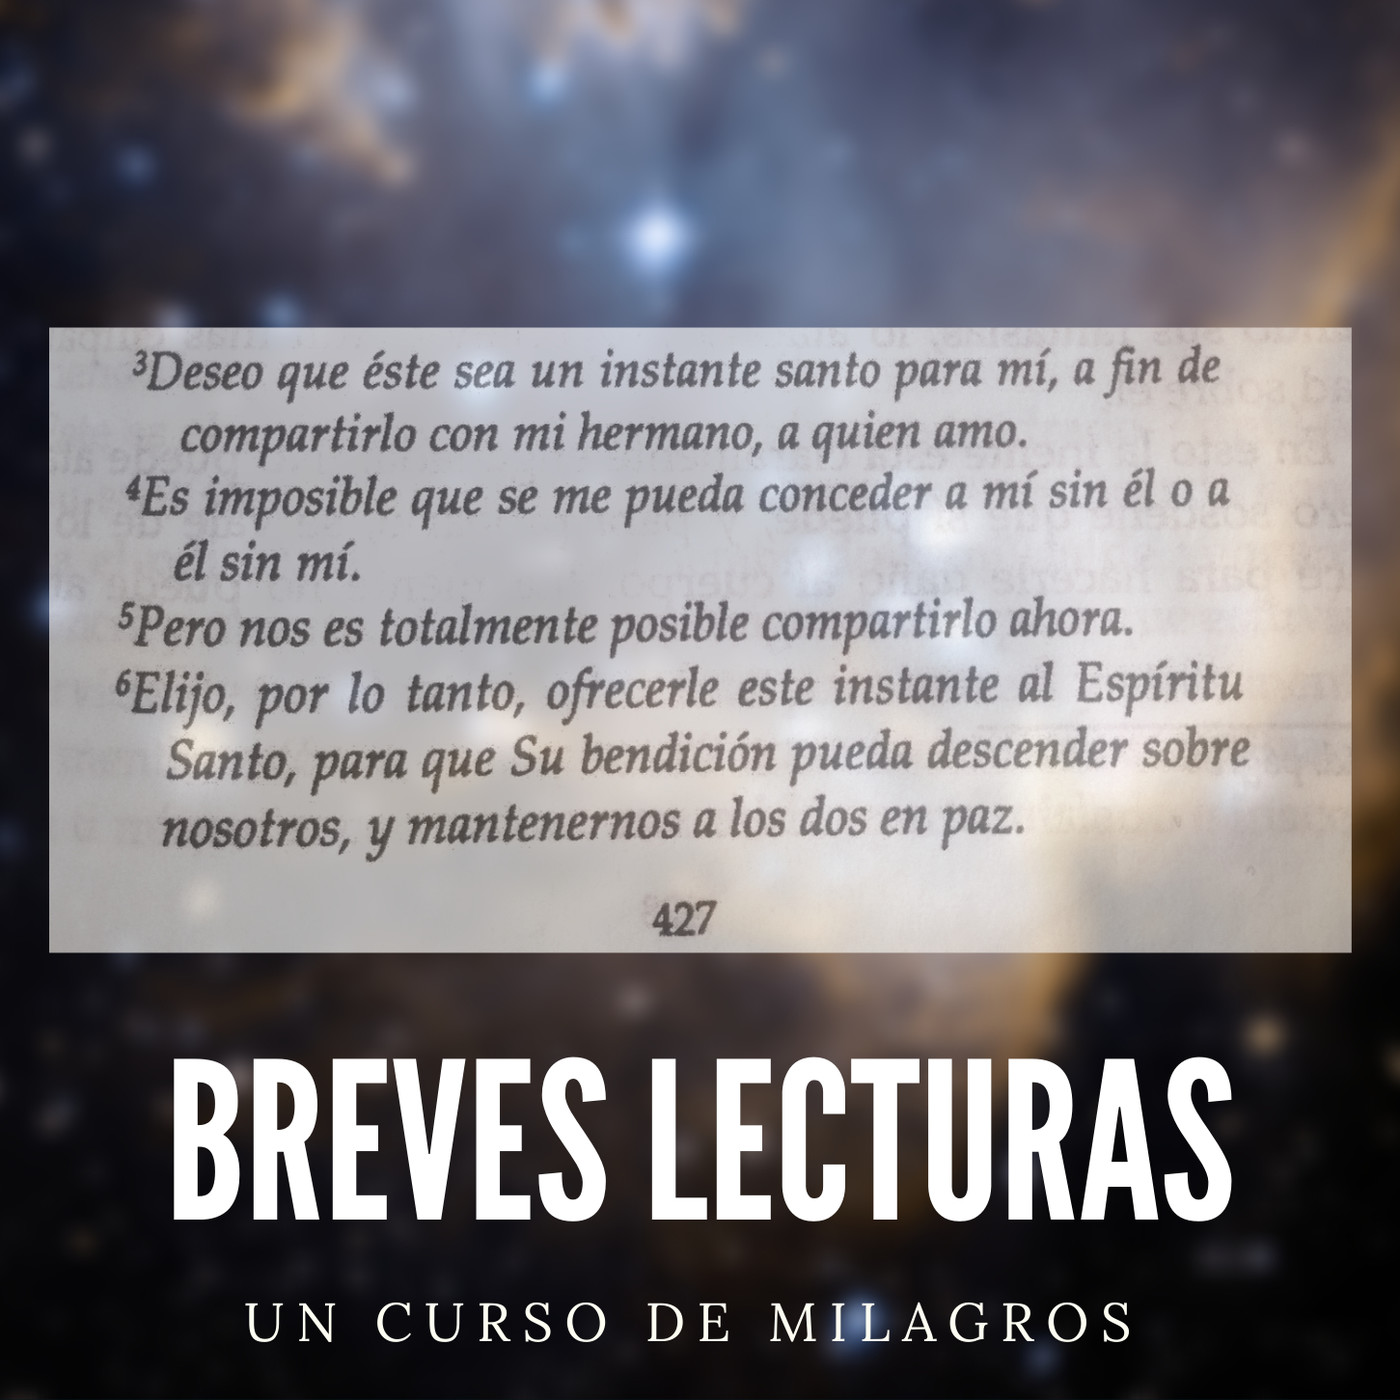 Breves lecturas